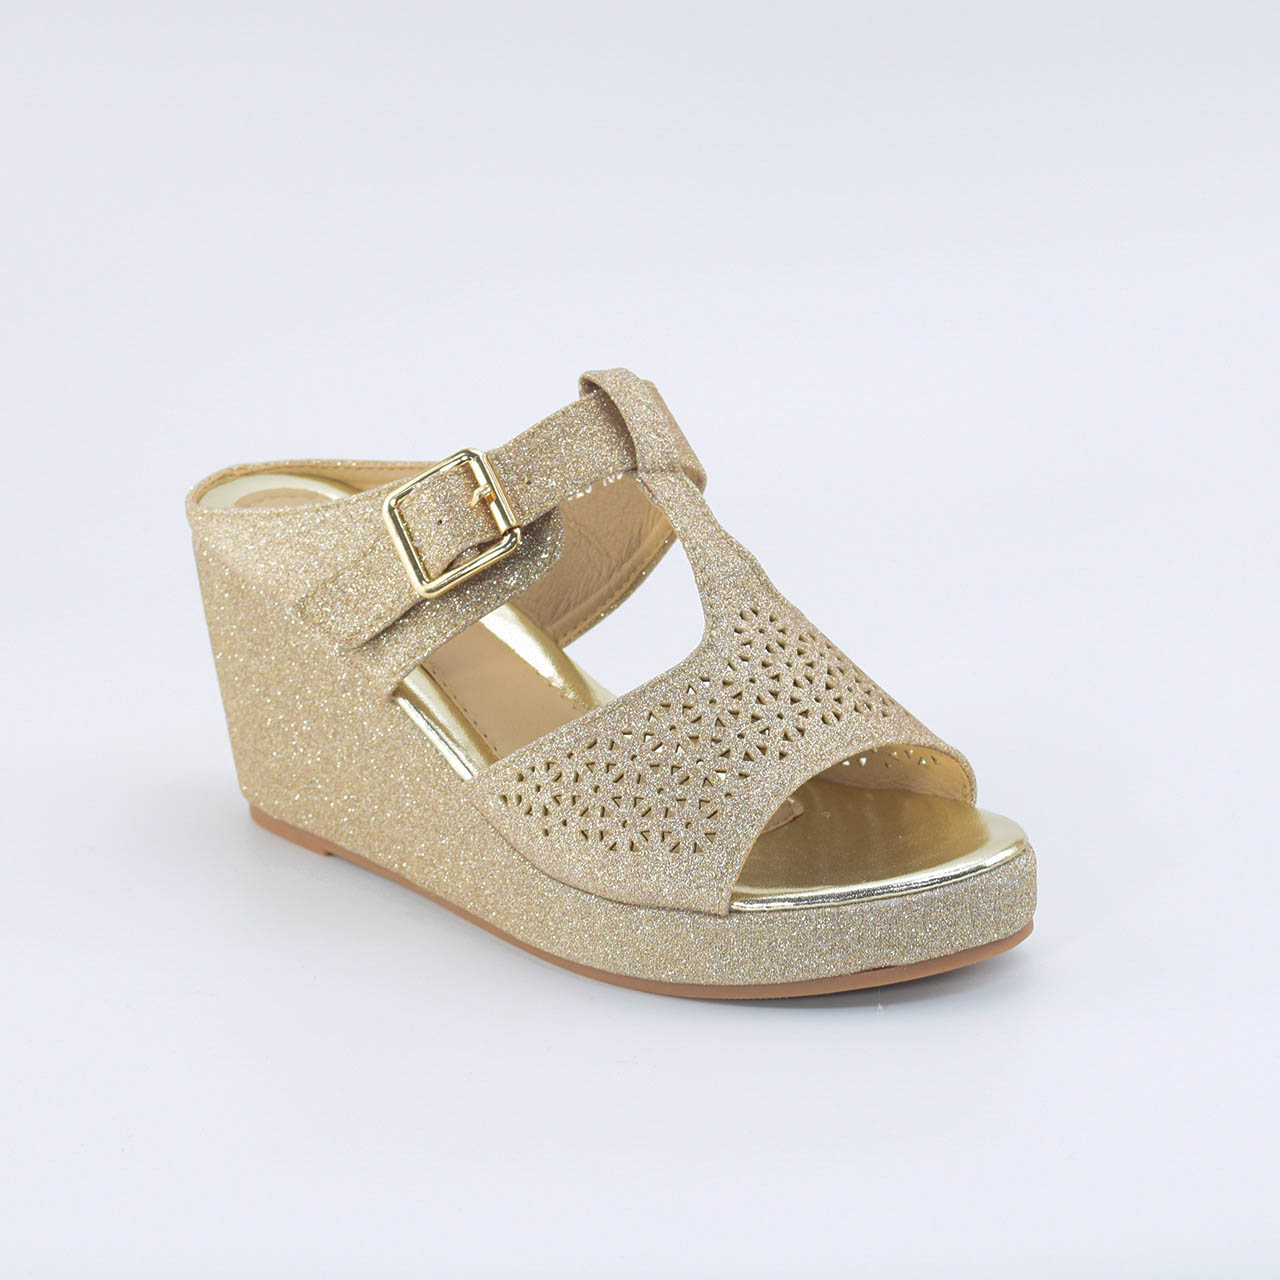 Danna Wedges in Gold